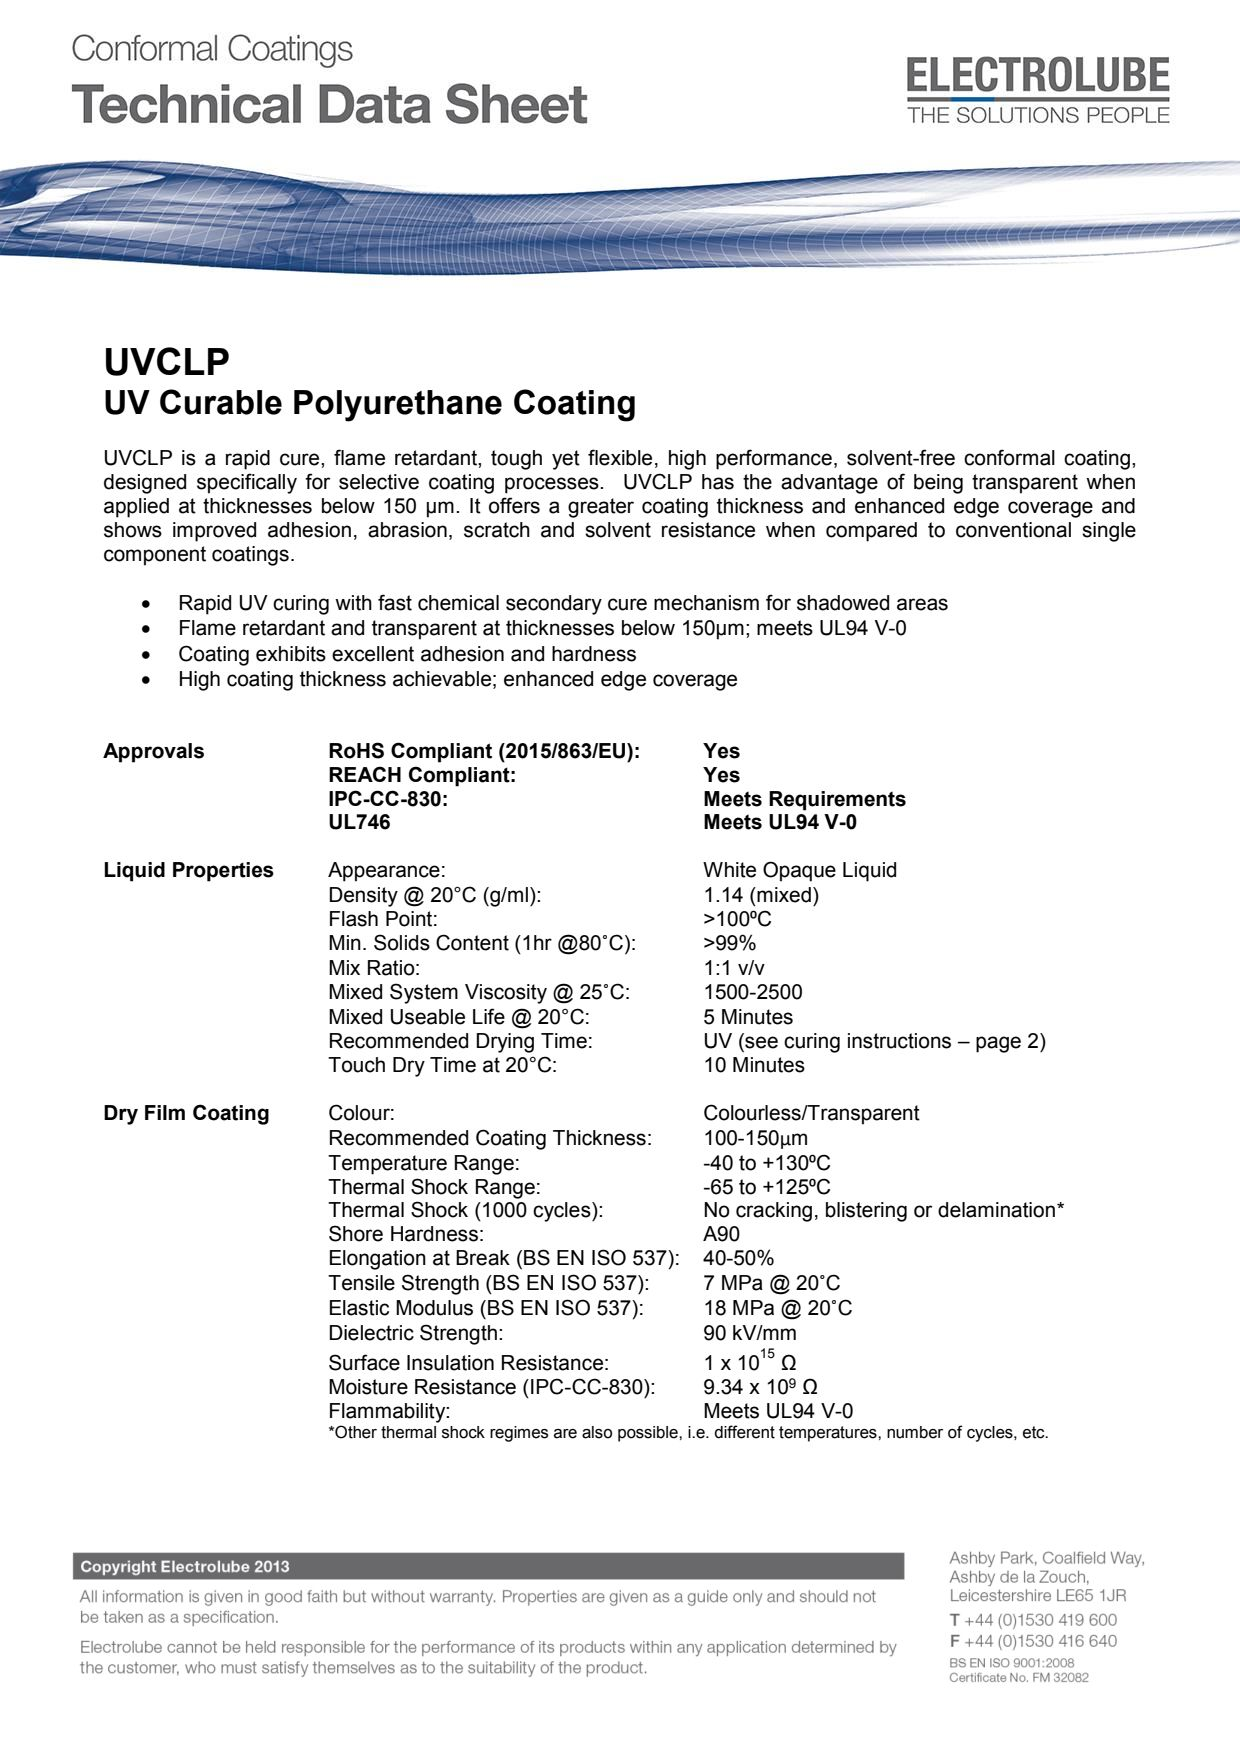 Next Generation UV Cure Conformal Coatings Increase Performance and Speed-up Production featured image